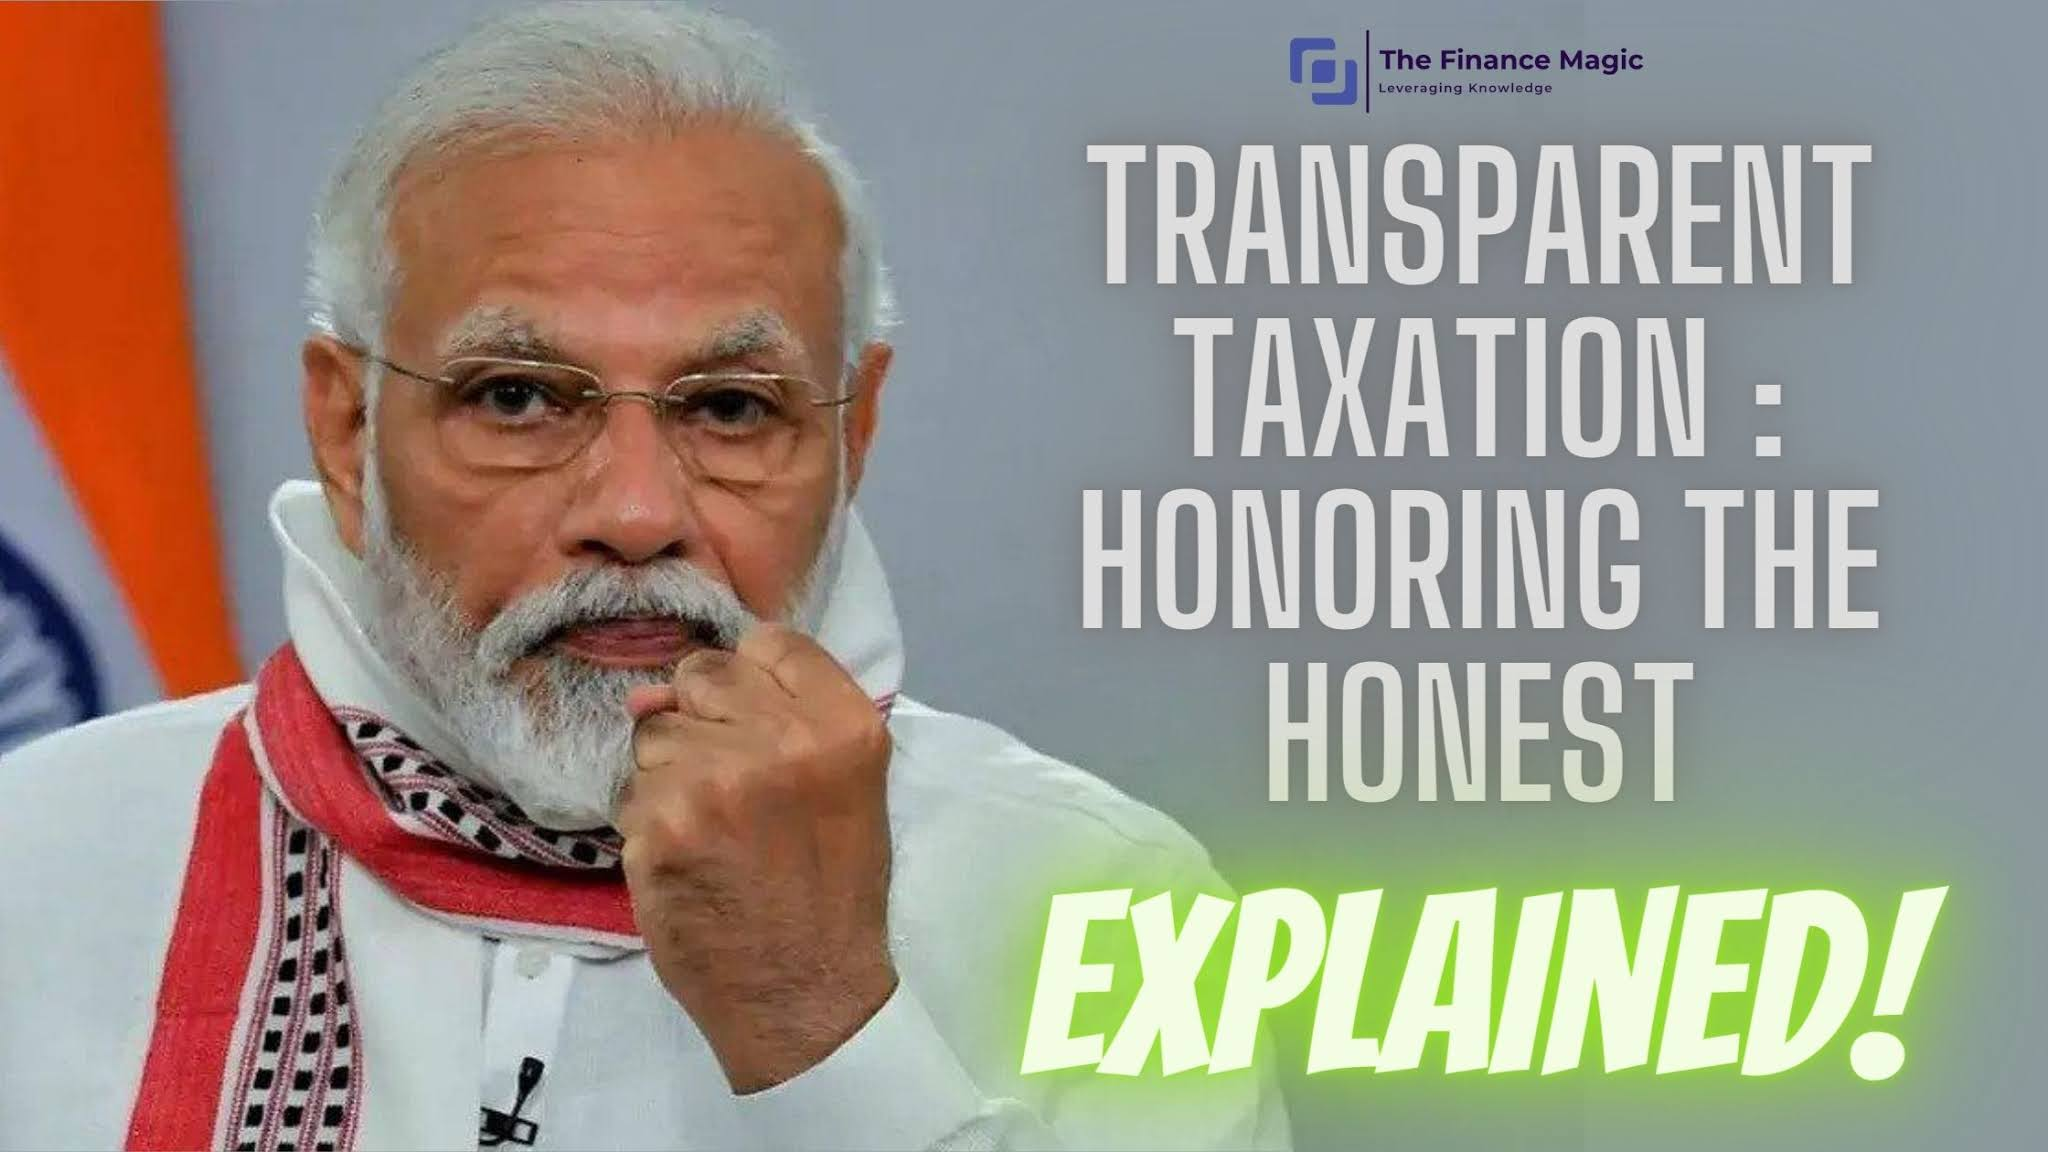 Transparent Taxation - Honoring the Honest